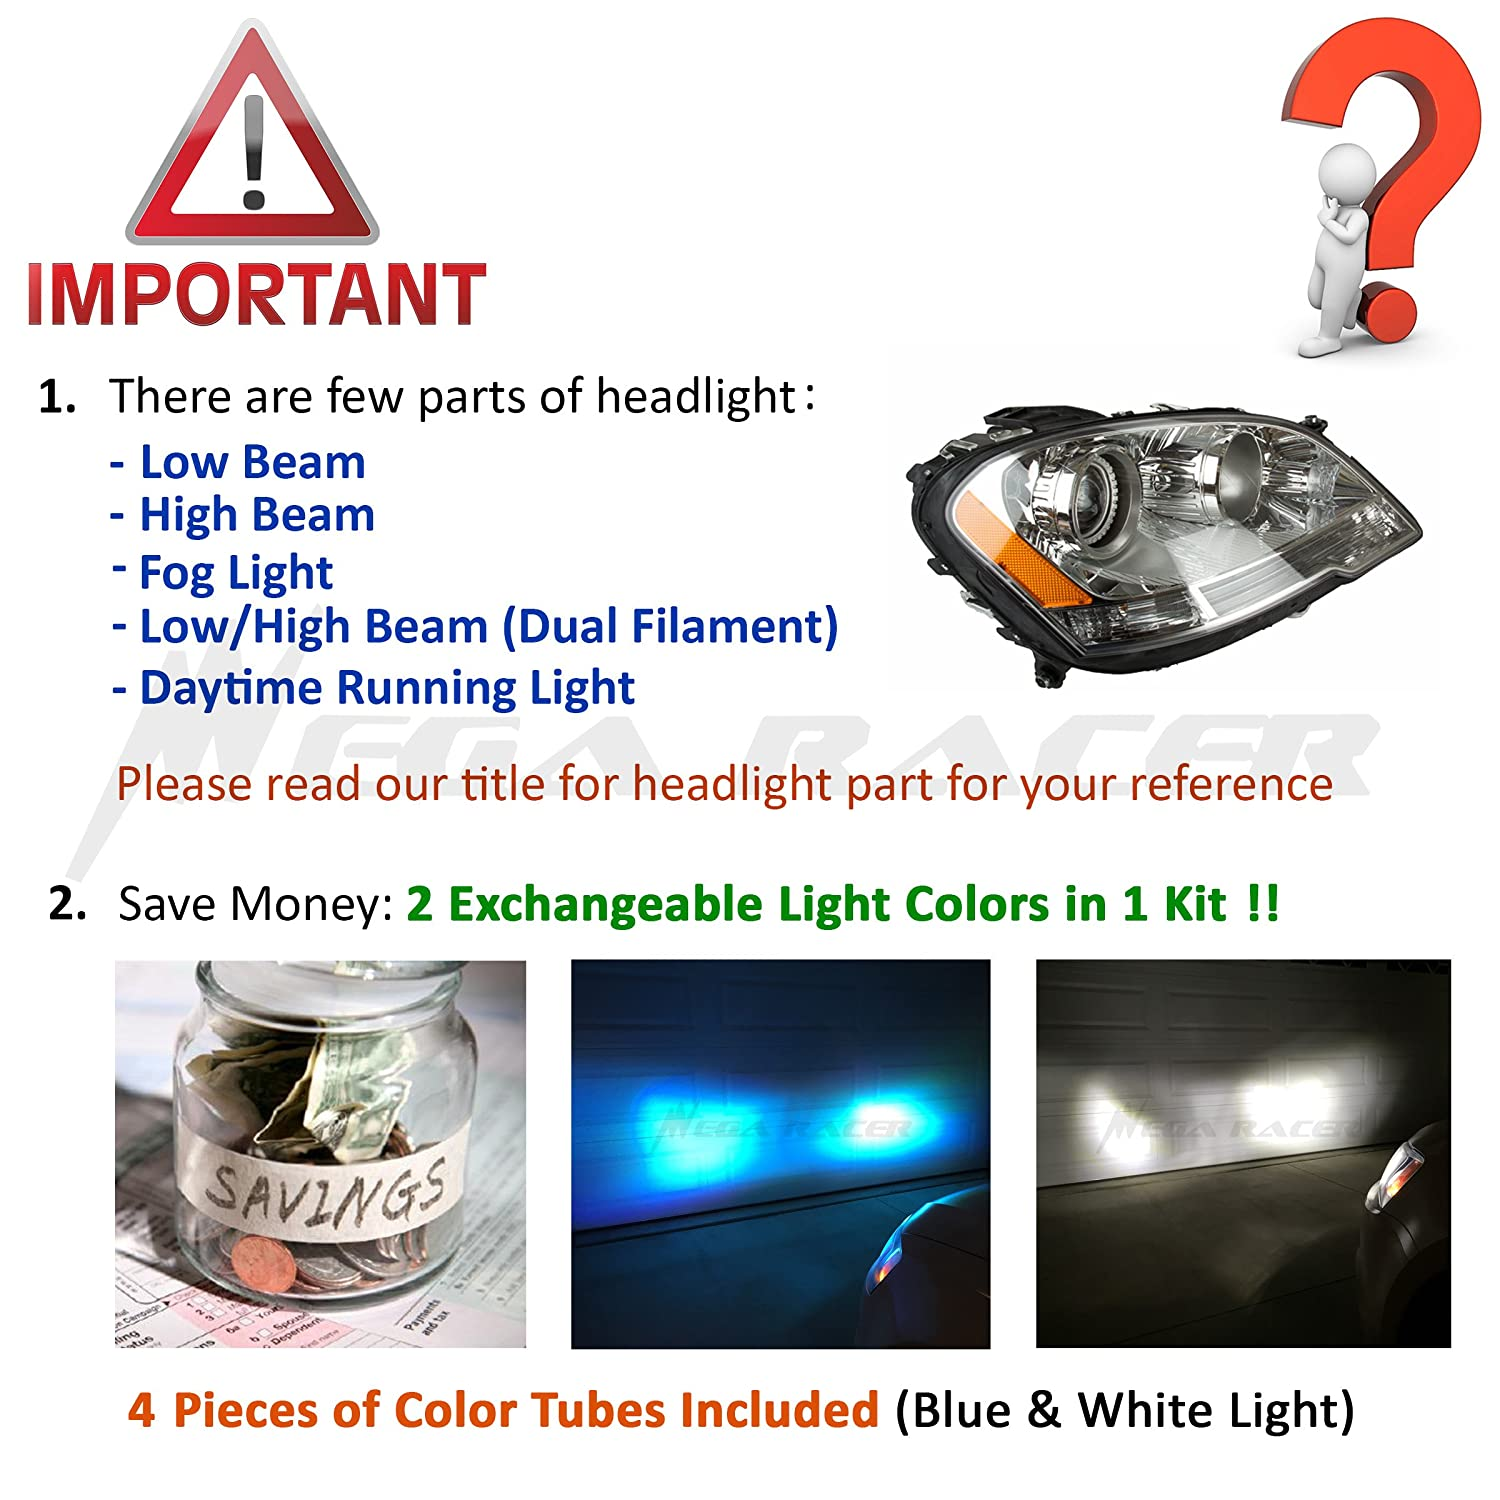 Amazon.com: Mega Racer (2 Colors in 1 Set) H7 10000K Blue 6000K White (Low Beam Headlight) CREE COB LED Xenon Kit Kit 8000 Lumen 80W US: Automotive